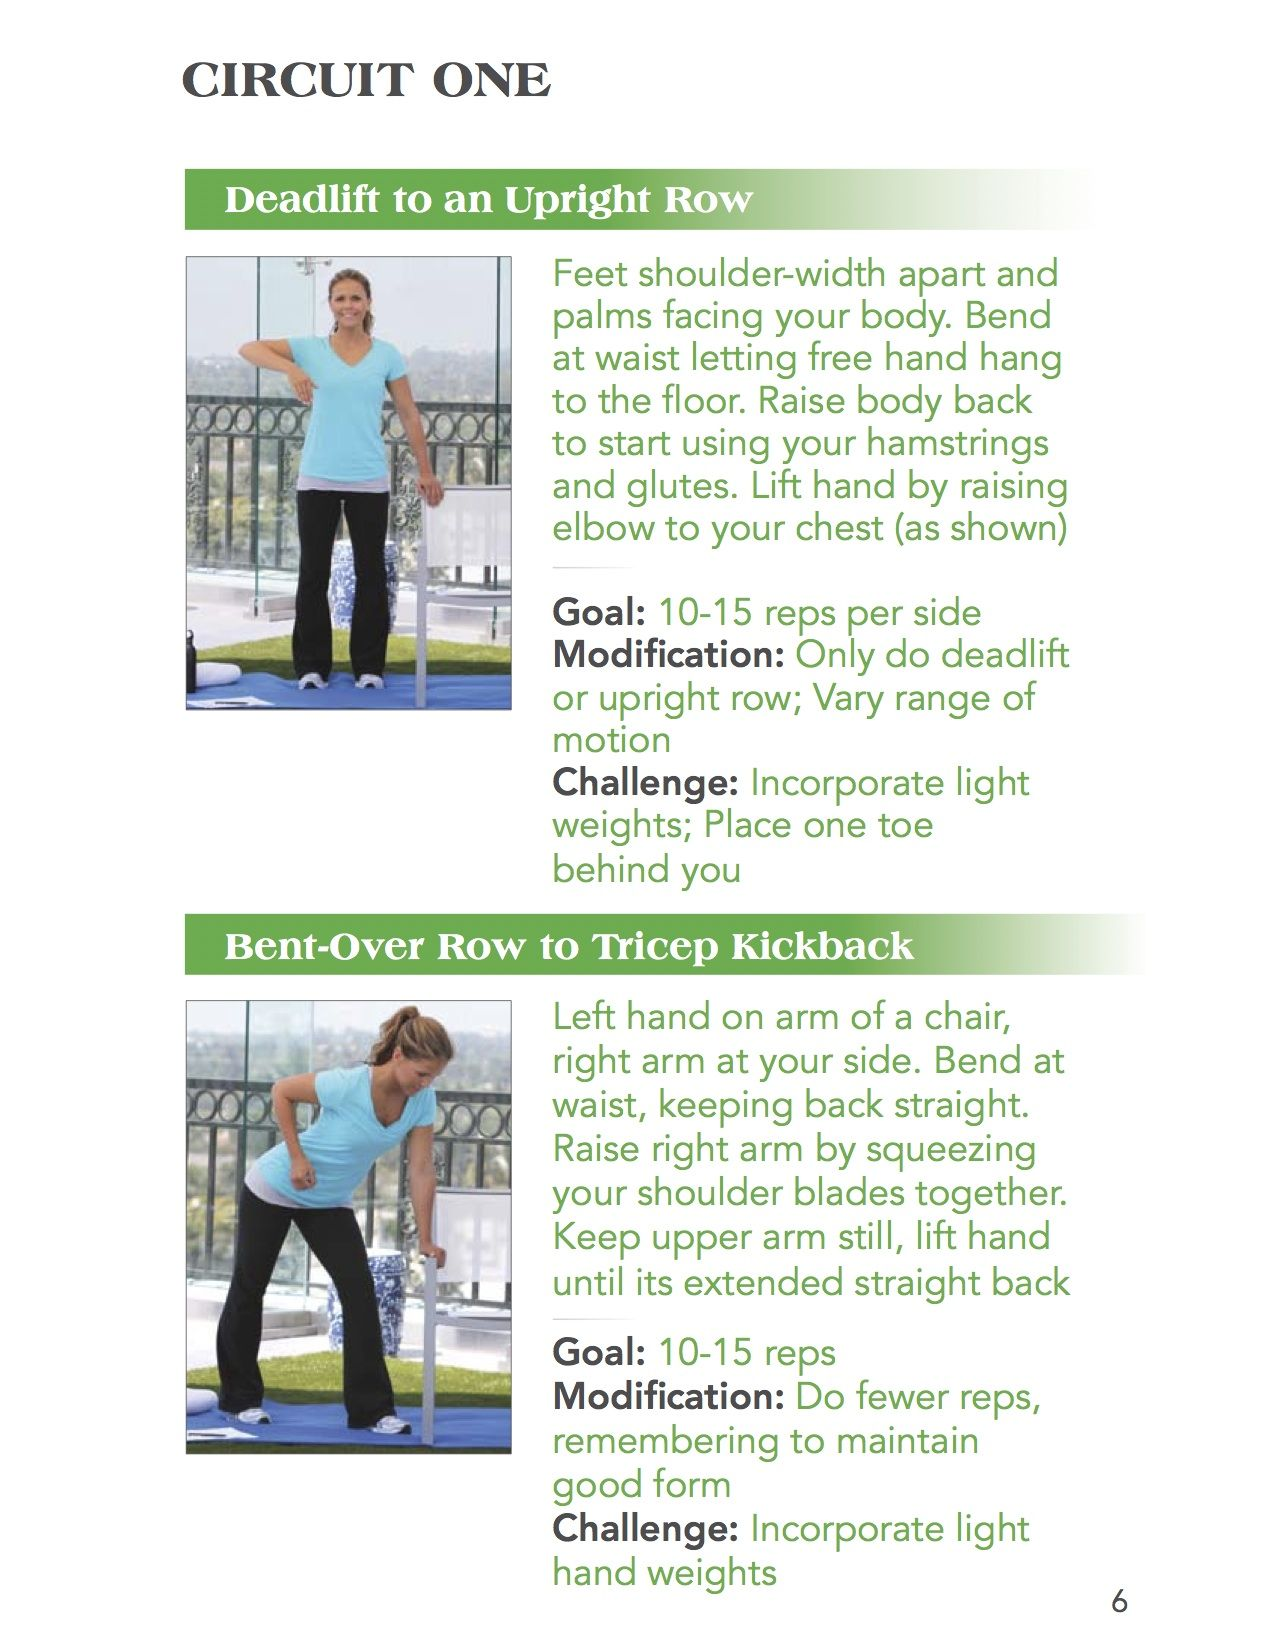 deadlift to an upright row and bent over row to tricep kickback rh pinterest com